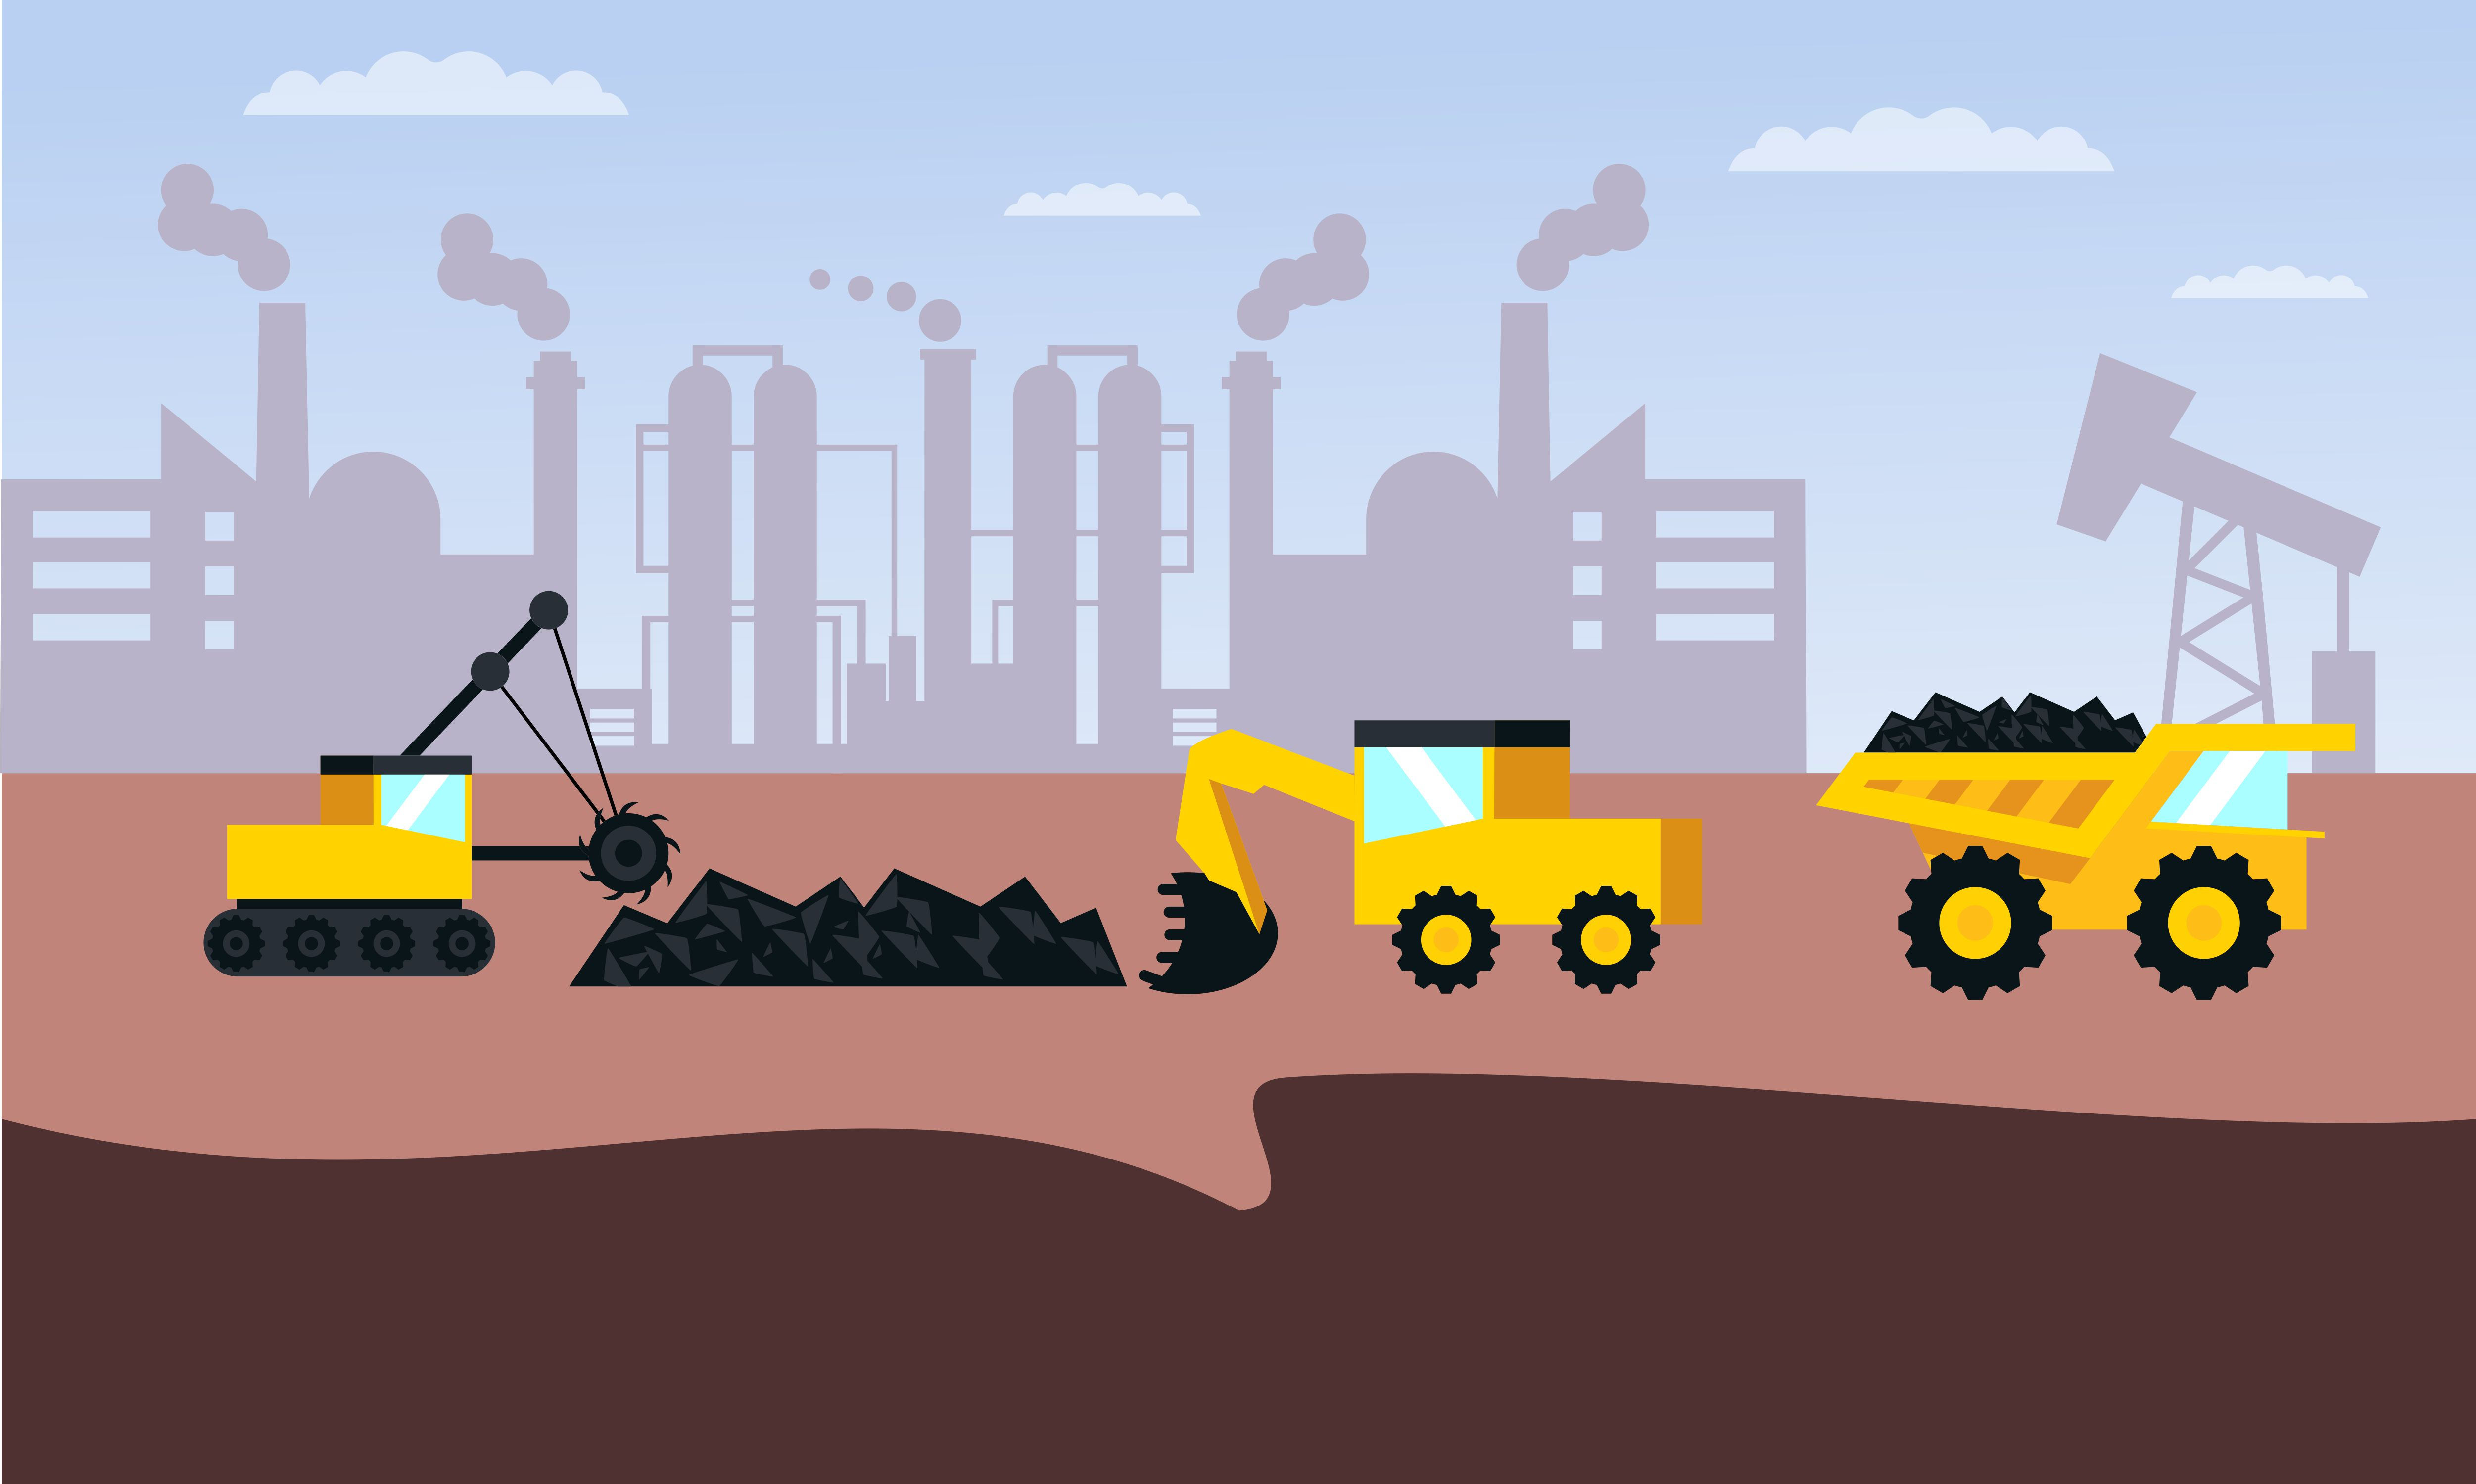 Download Free Mining Industry Flat Composition Logo Graphic By Deemka Studio for Cricut Explore, Silhouette and other cutting machines.